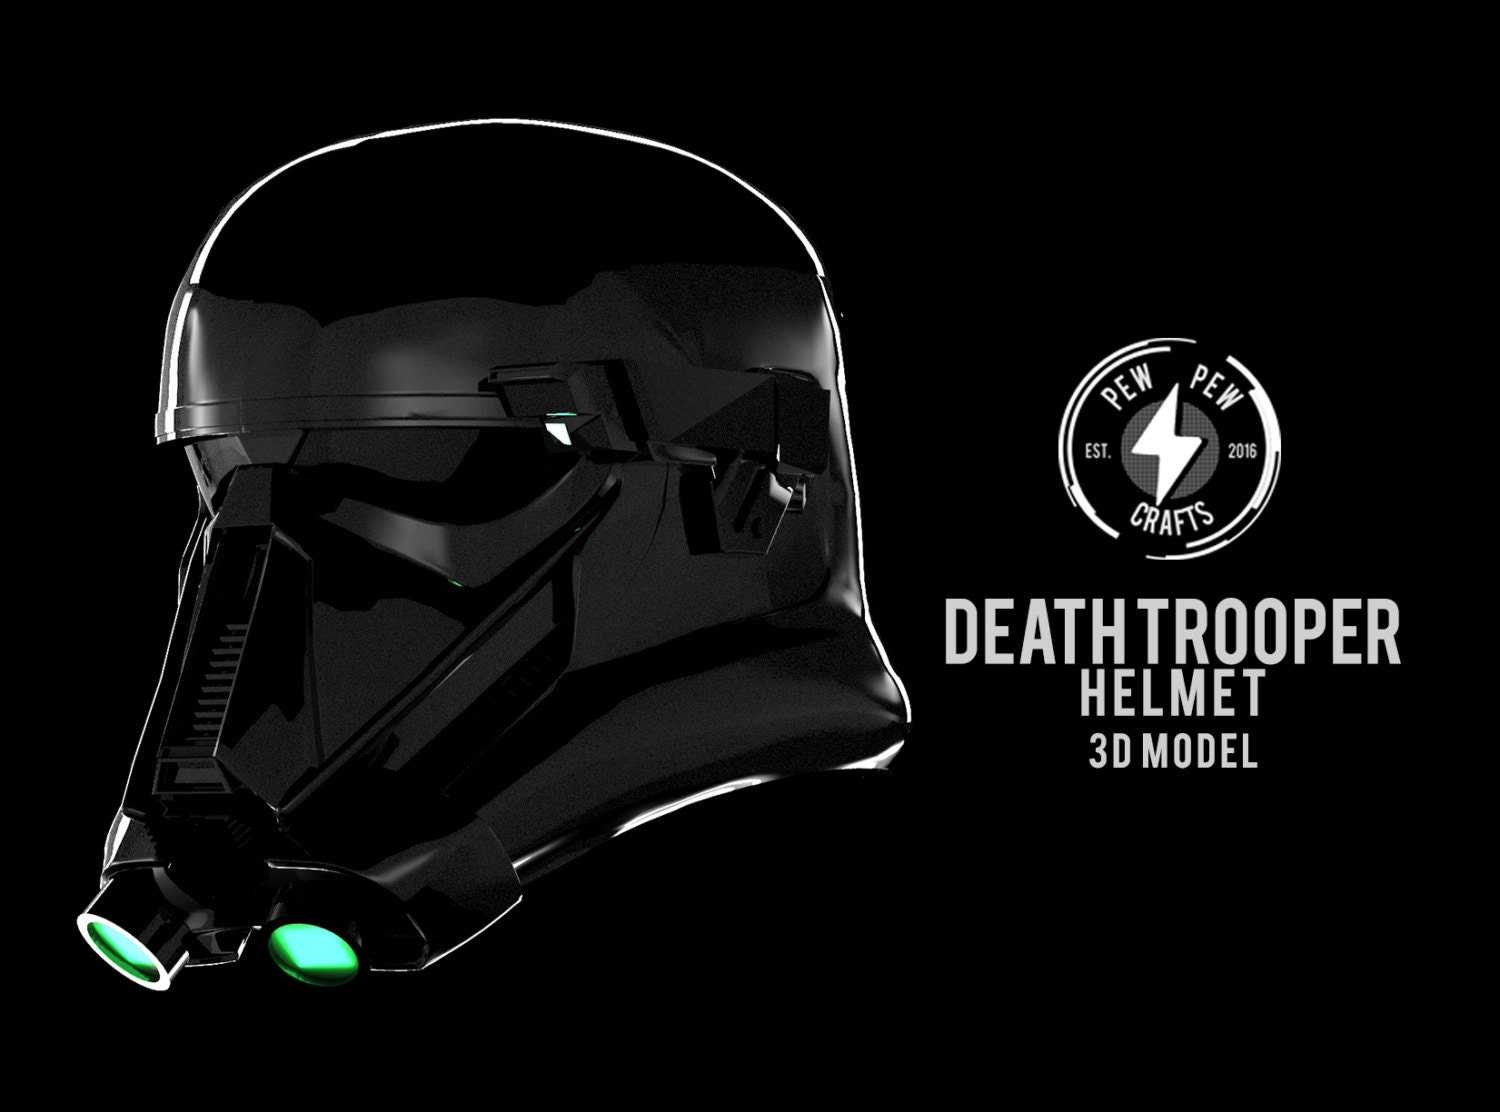 death trooper 3d model v1 digital file rogue one. Black Bedroom Furniture Sets. Home Design Ideas